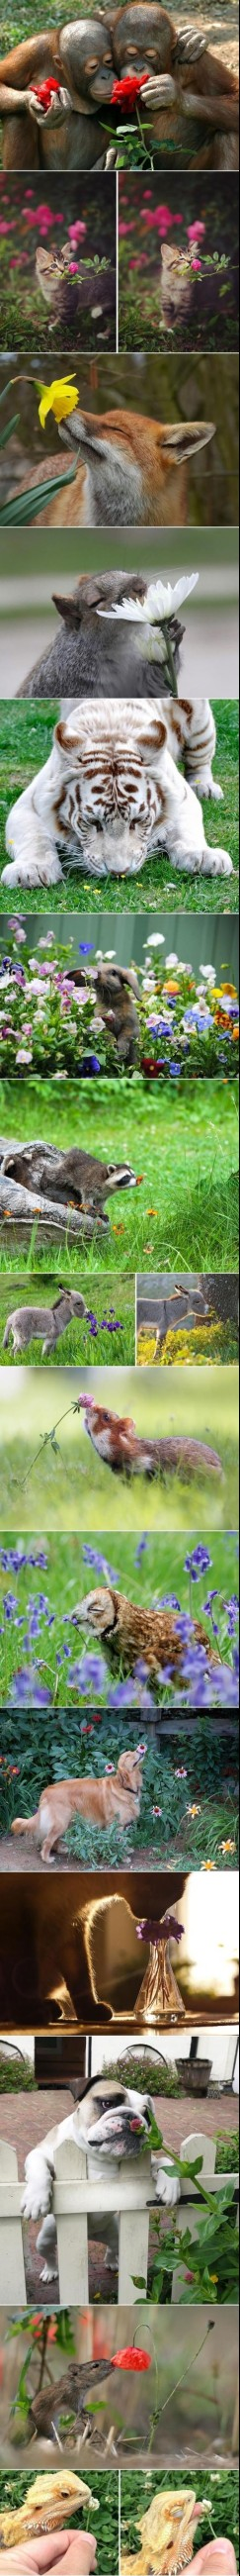 Animals taking time to smell the flowers